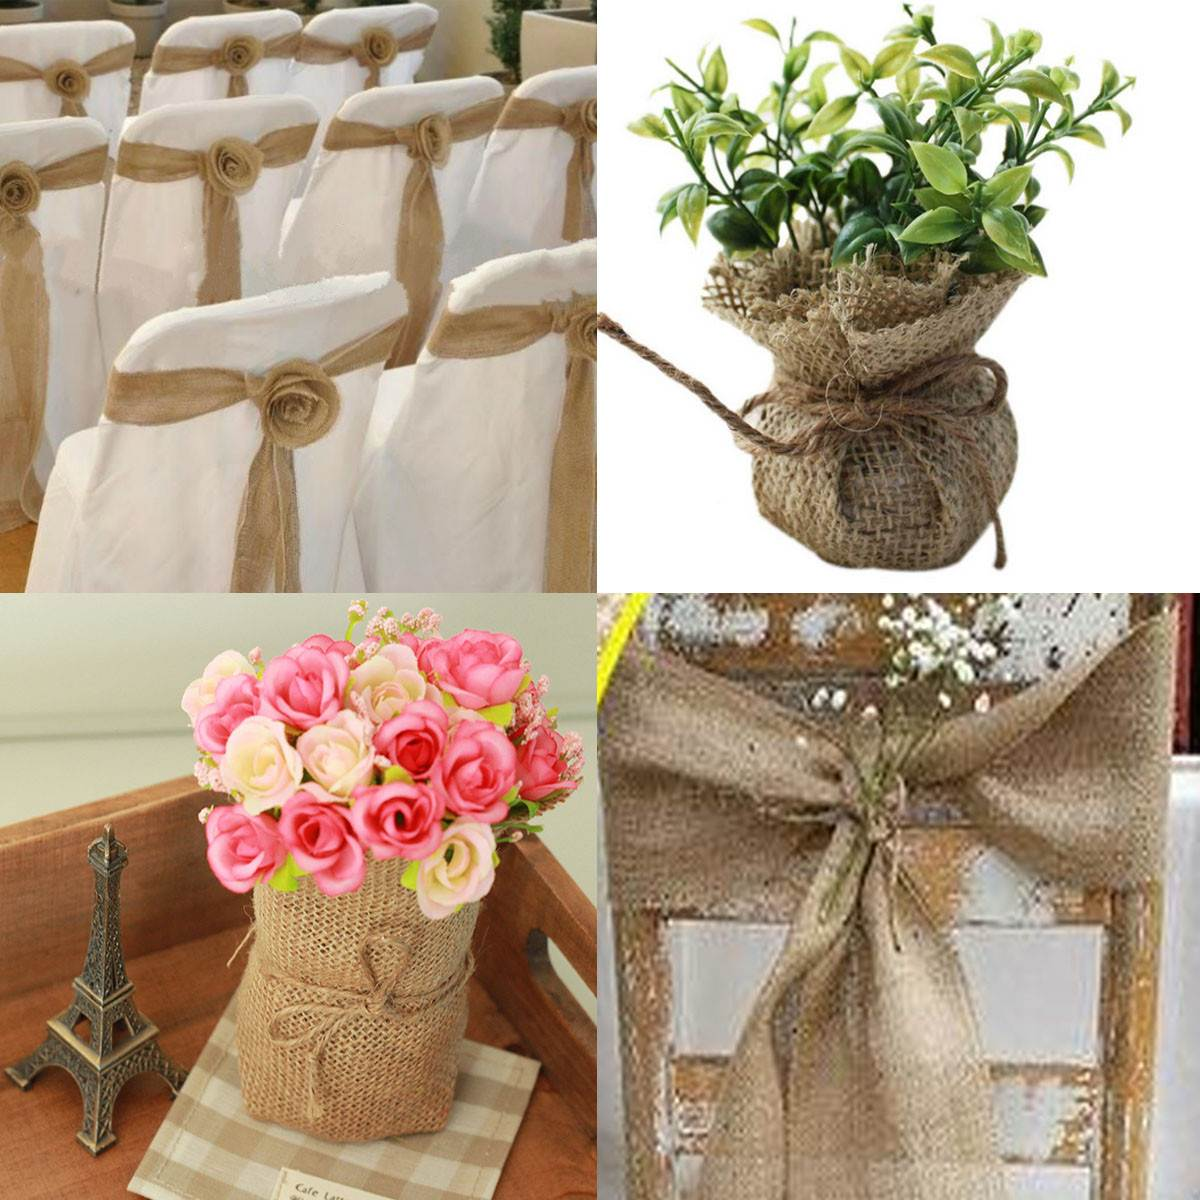 Burlap Chair Covers For Folding Chairs Swivel Upholstered Popular Sash Buy Cheap Lots